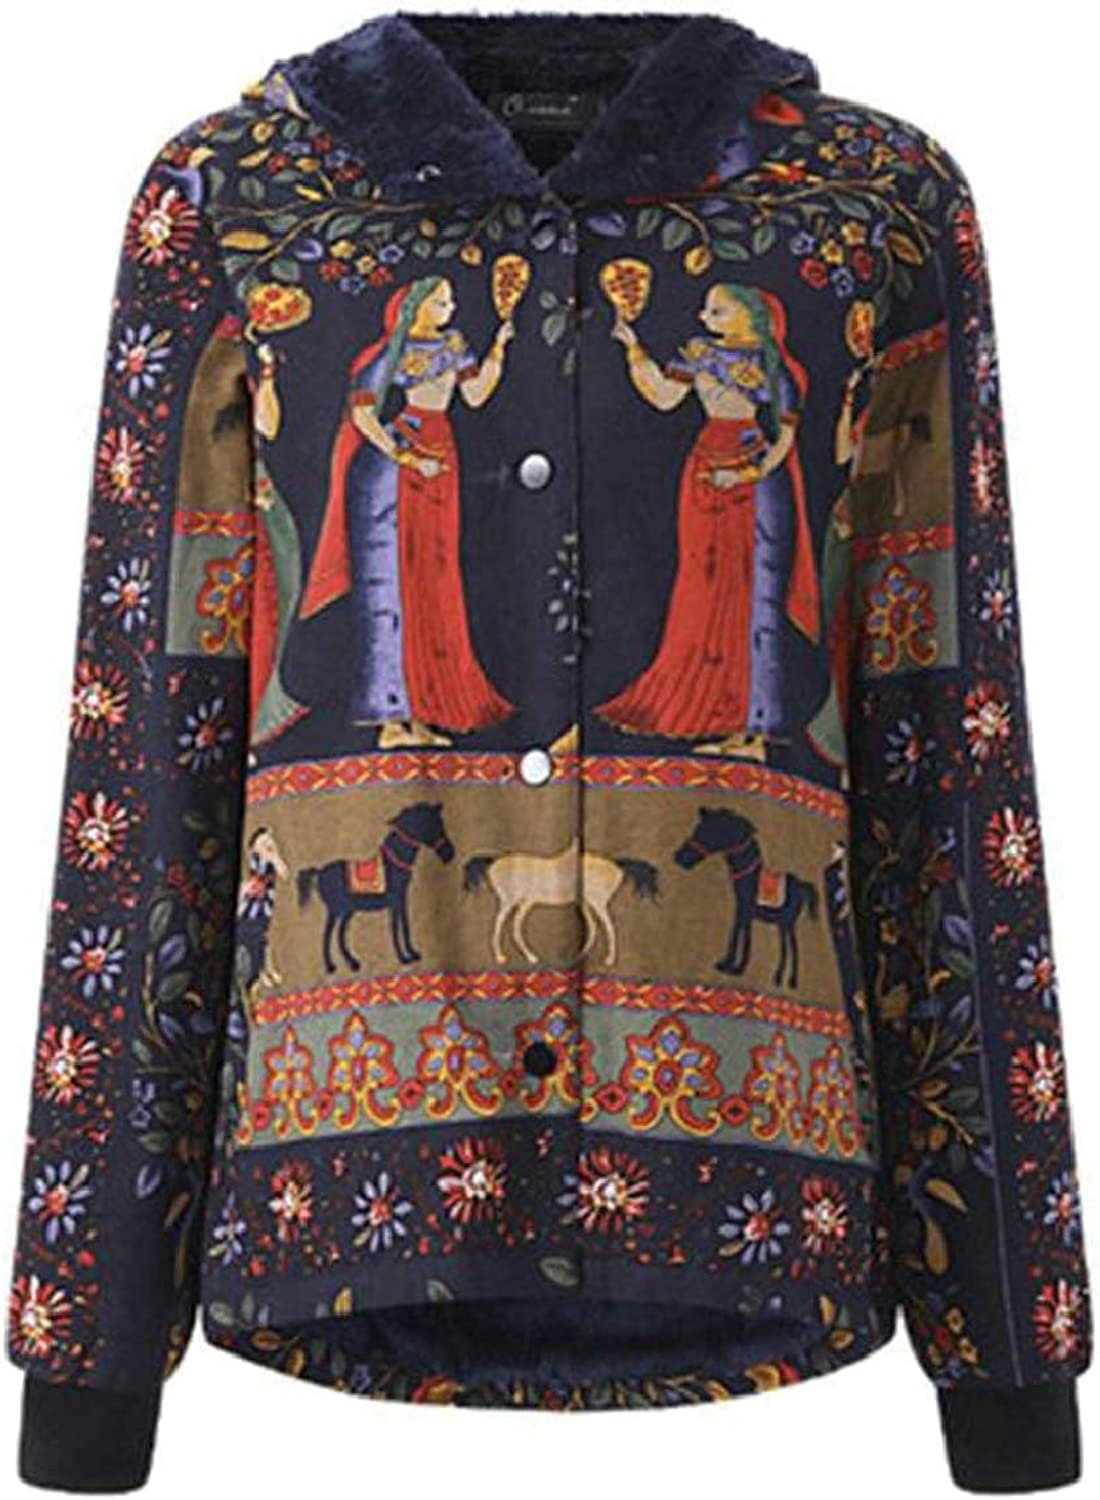 QDCACA Women's Thicken Button Ethnic Floral Printed Hooded Vintage Padded Coat